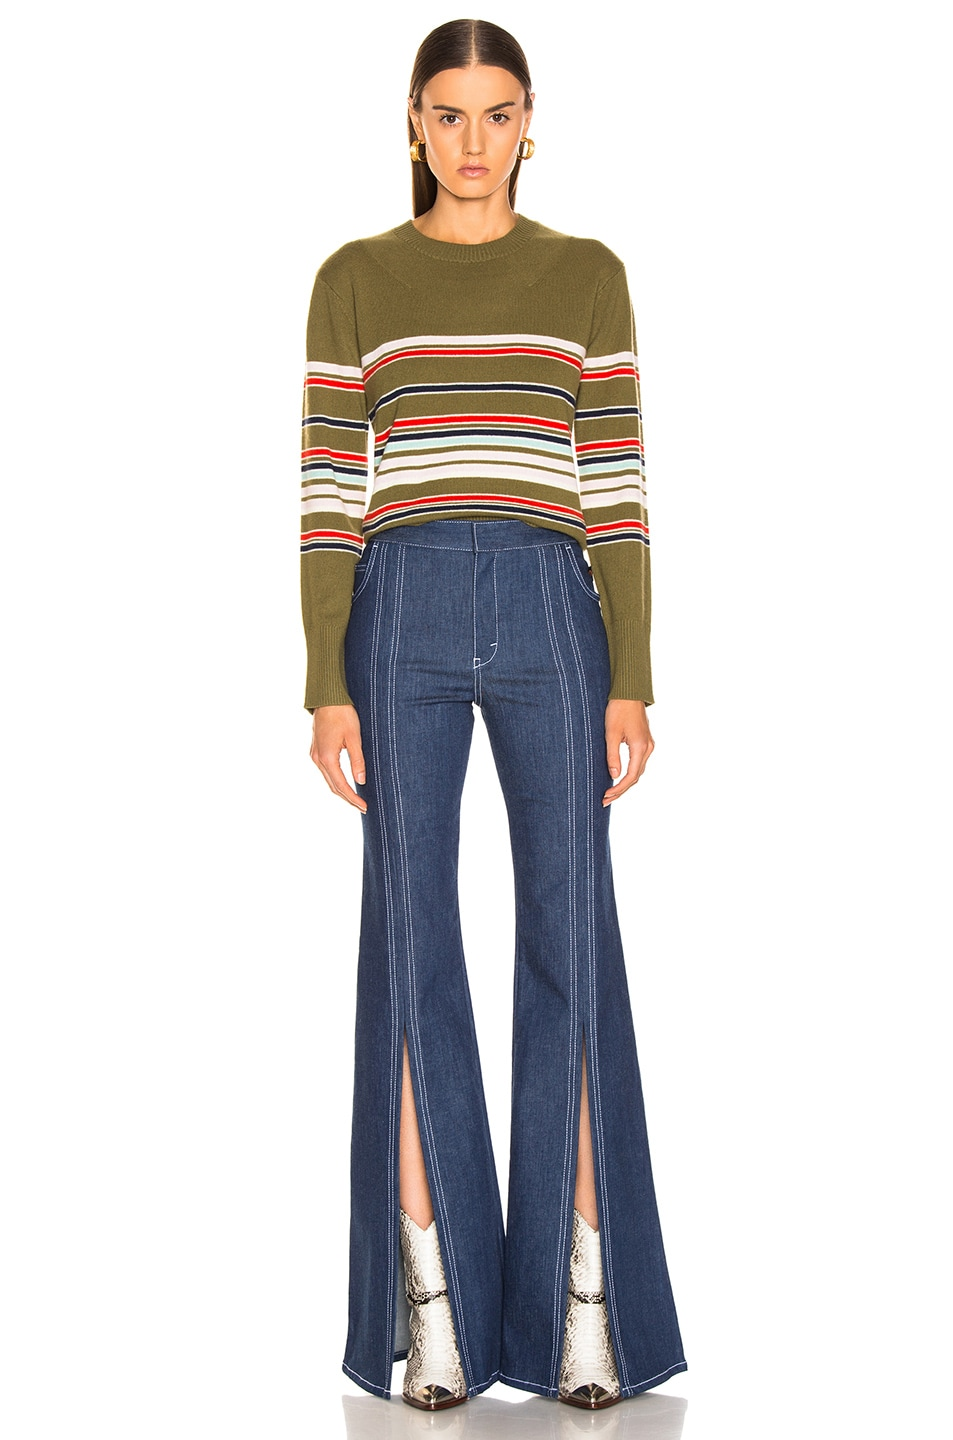 Image 4 of Sies Marjan Freddy Striped Sweater in Olive Multi